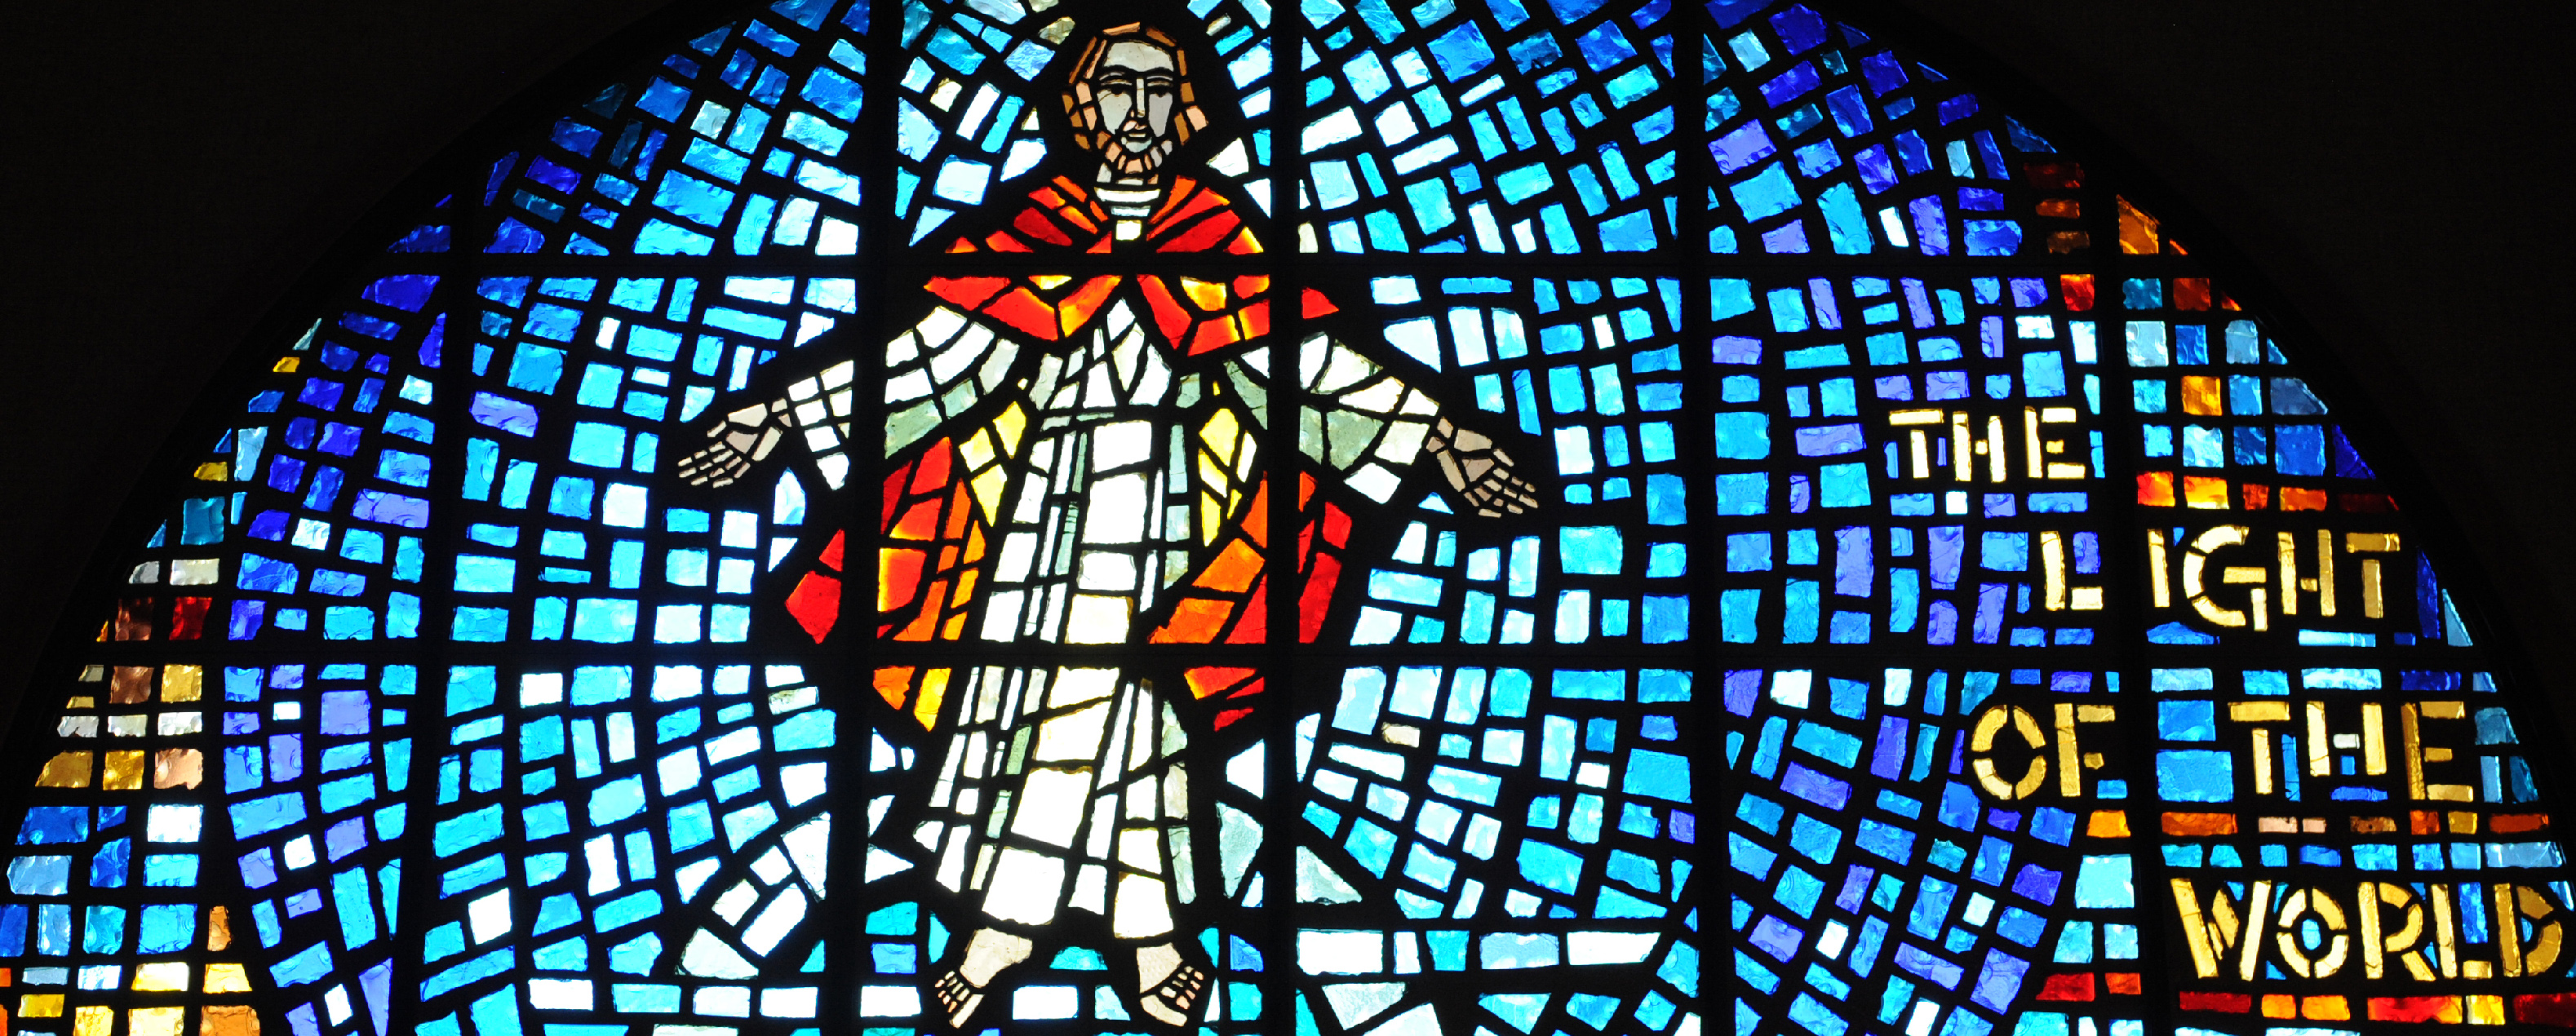 Stained glass window featuring Jesus in white and red robes, surrounded by a blue background. Yellow words on the right side say: The light of the world.